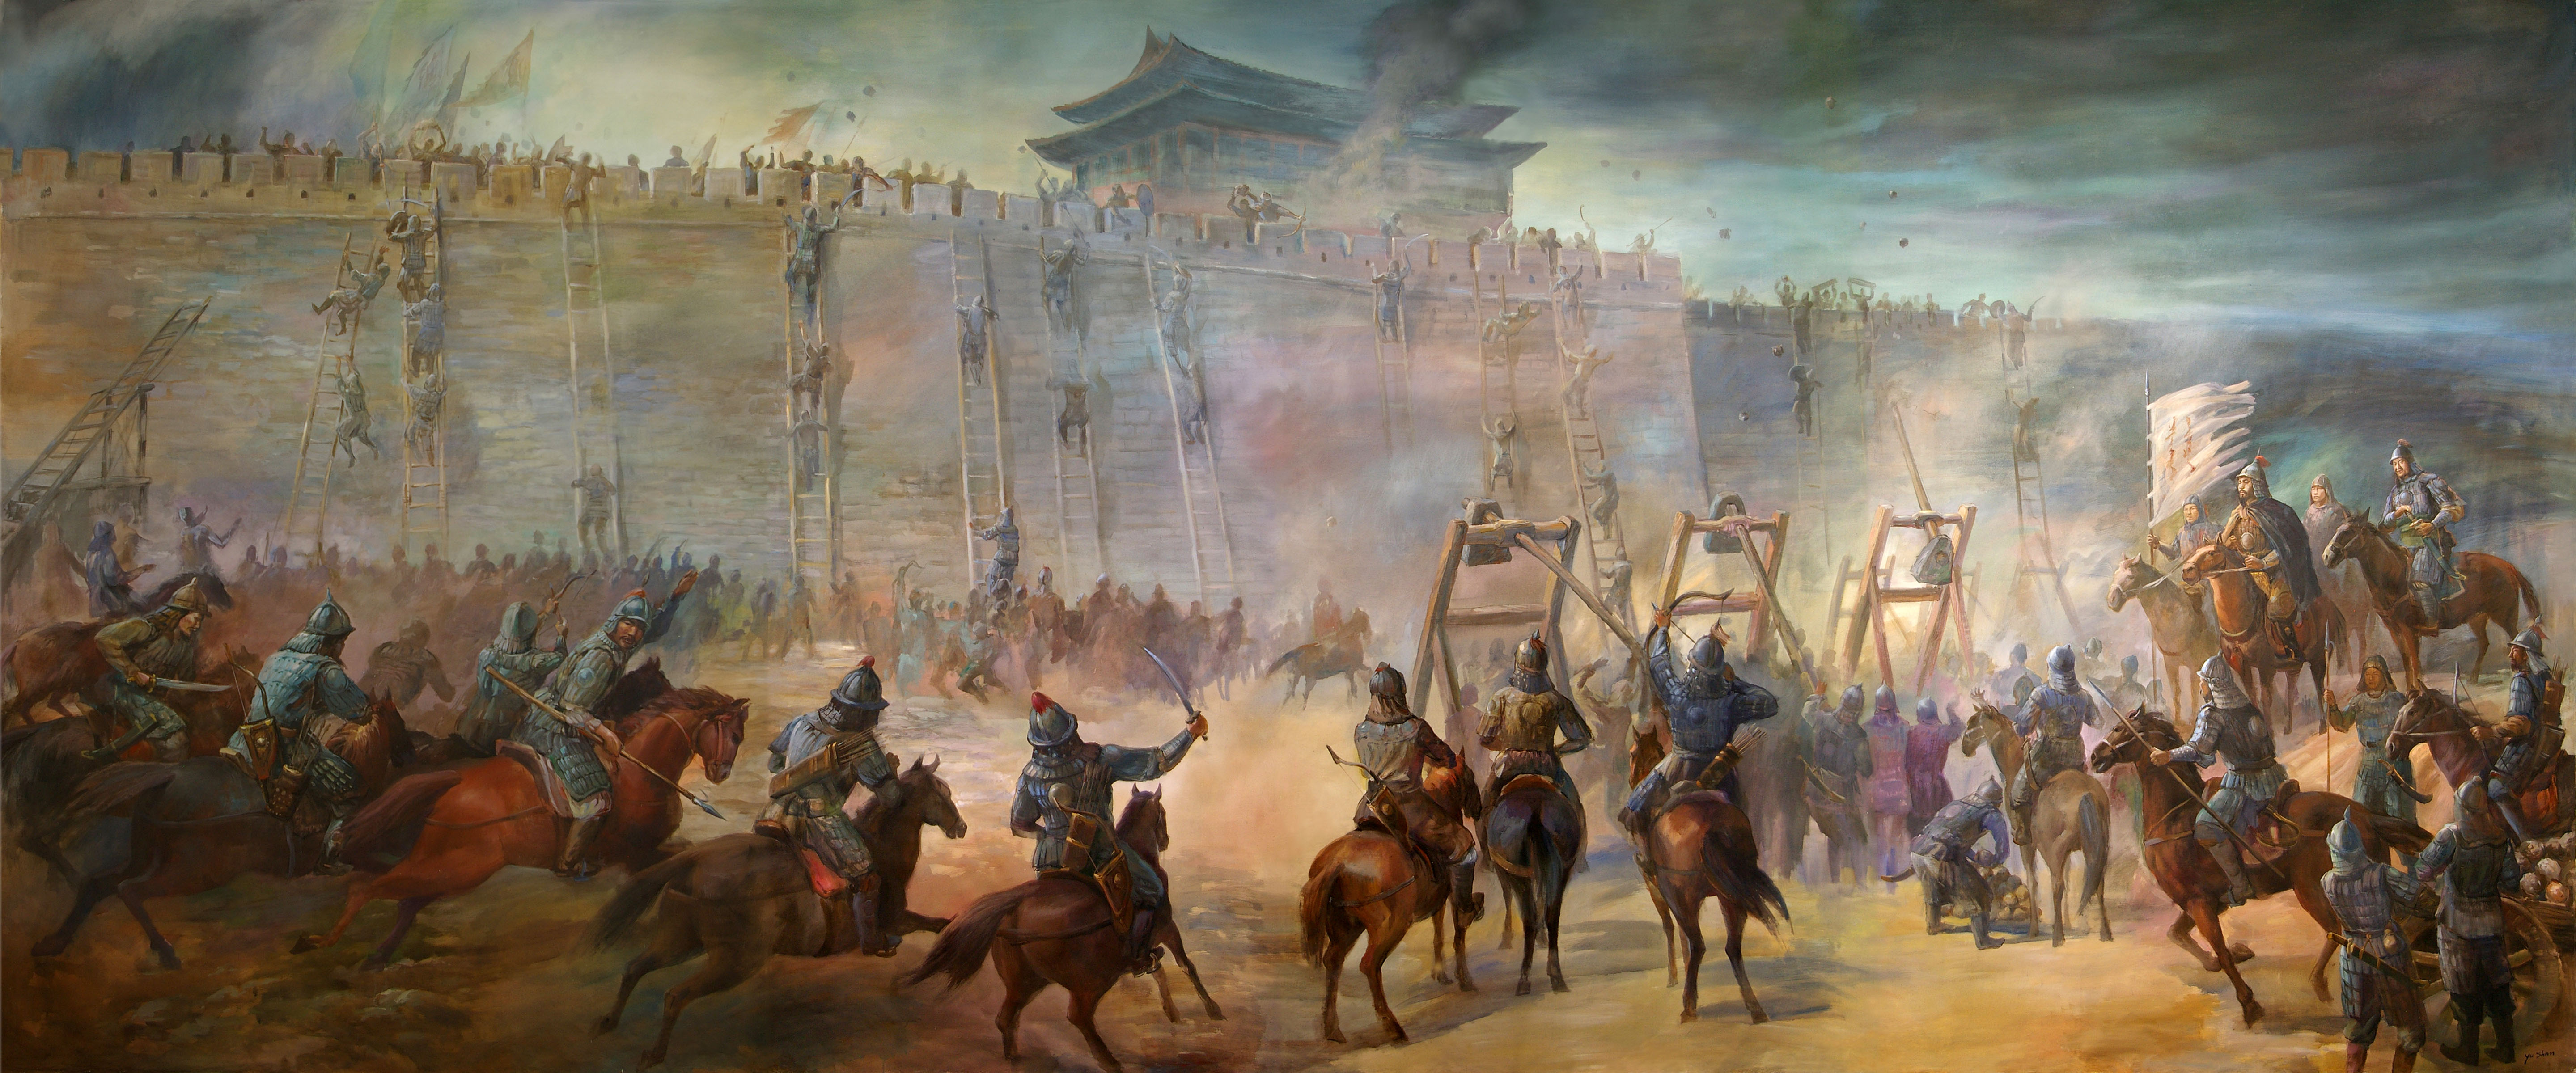 file genghiz khan and his forces laying seige and then attacking a